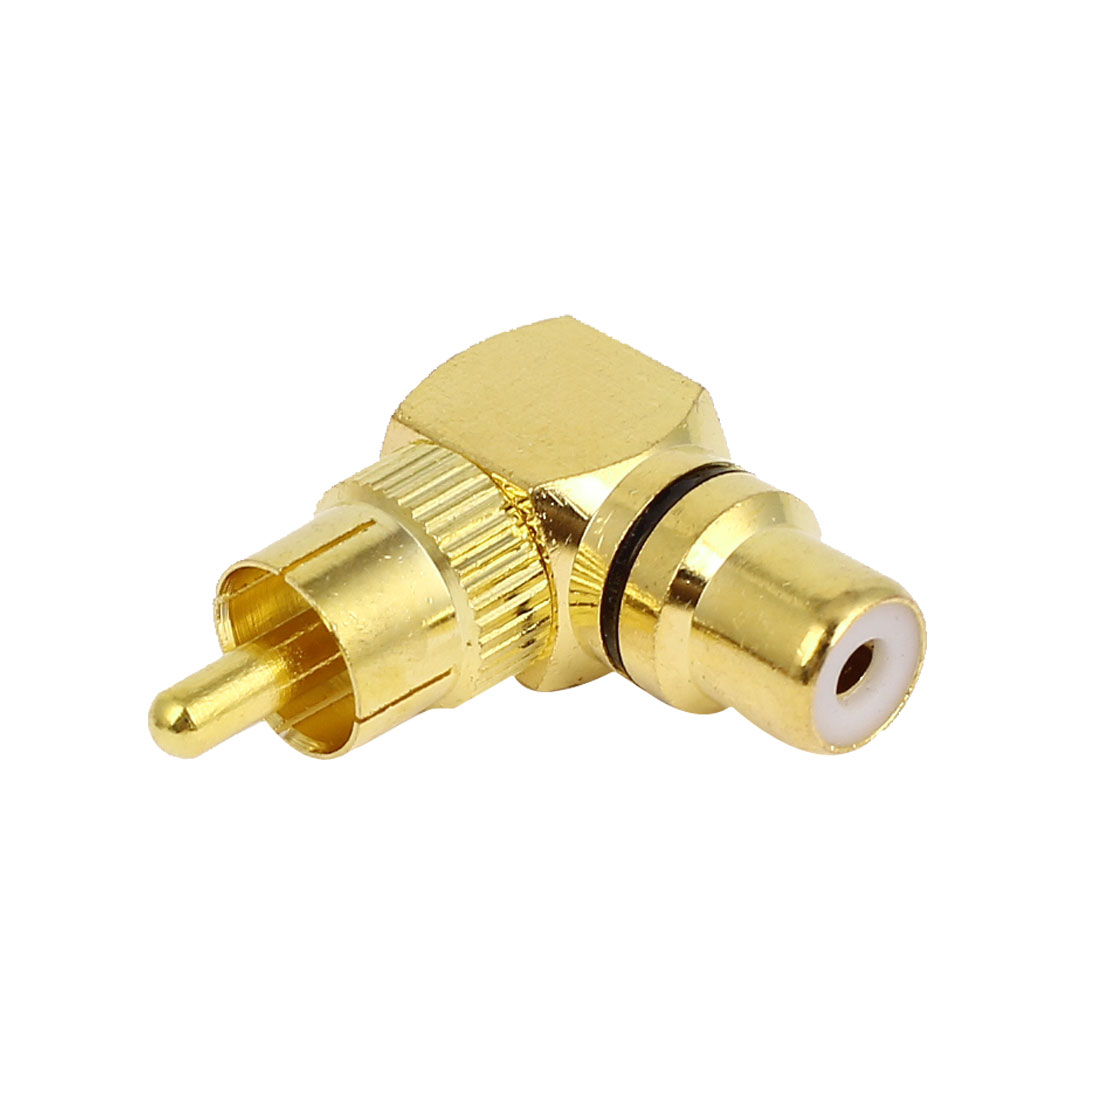 Gold Plated RCA Right Angle Connector Adapters Male to Female Jack